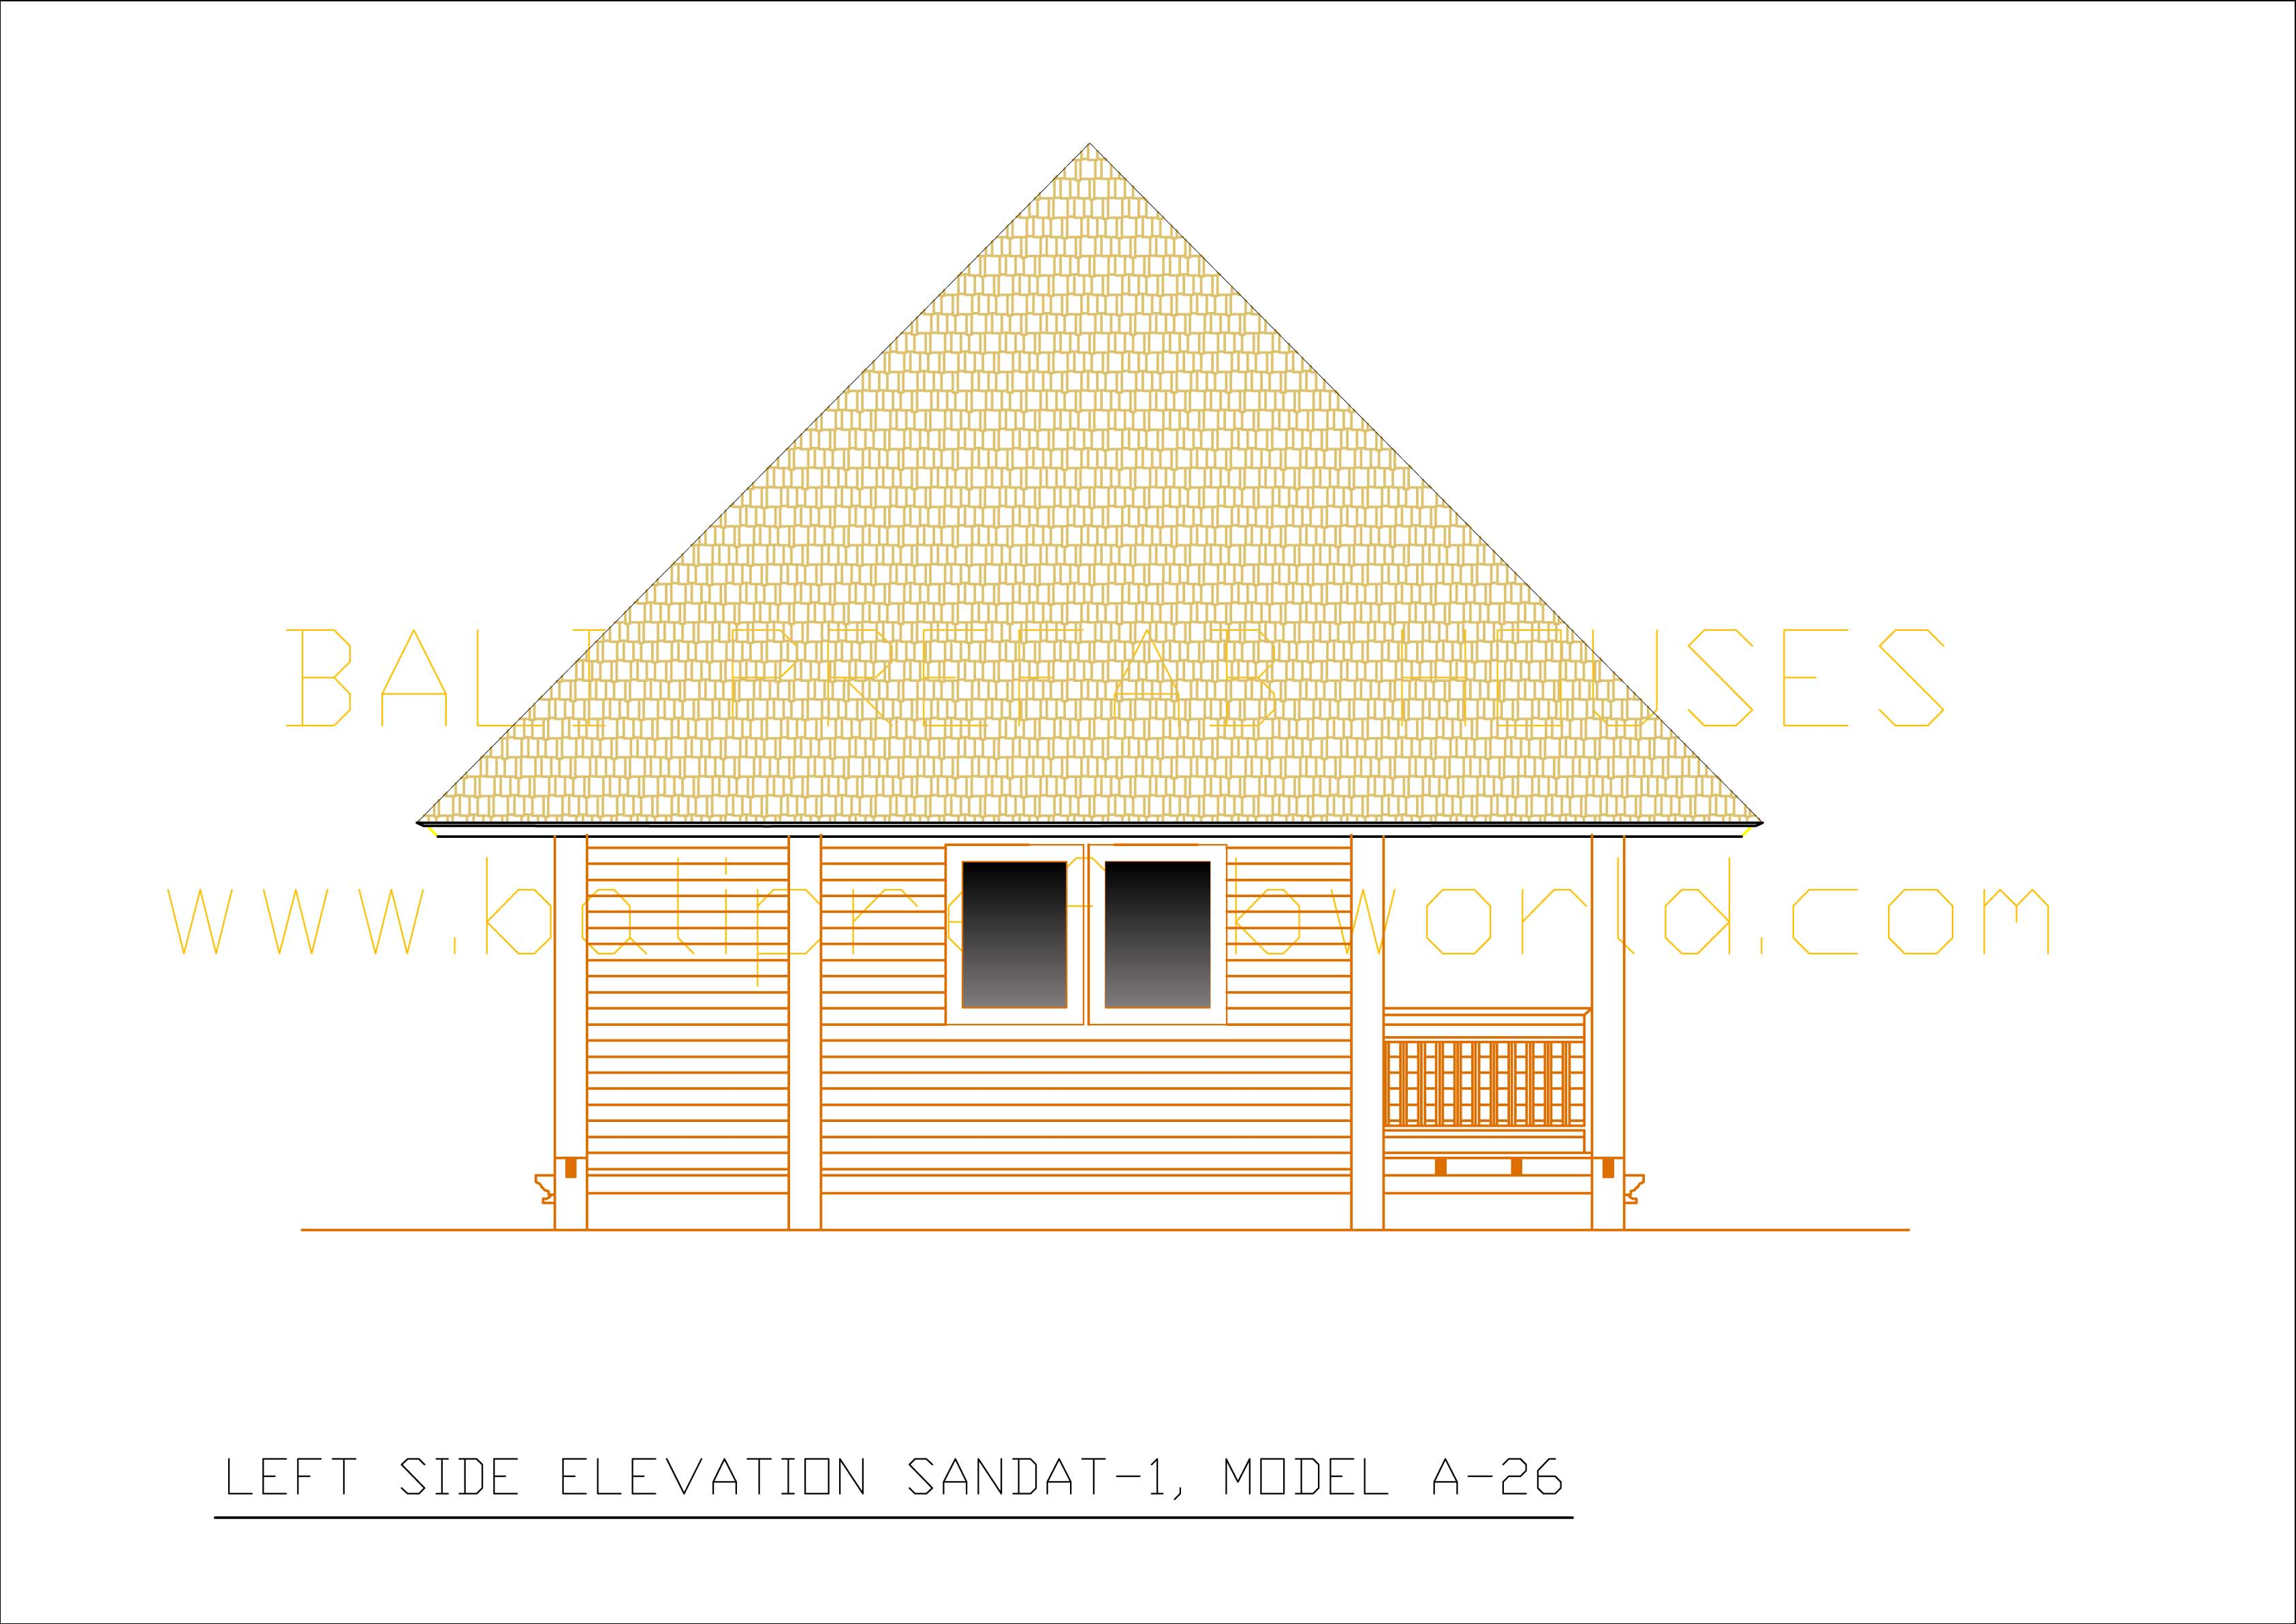 Sandat-1 left side elevation